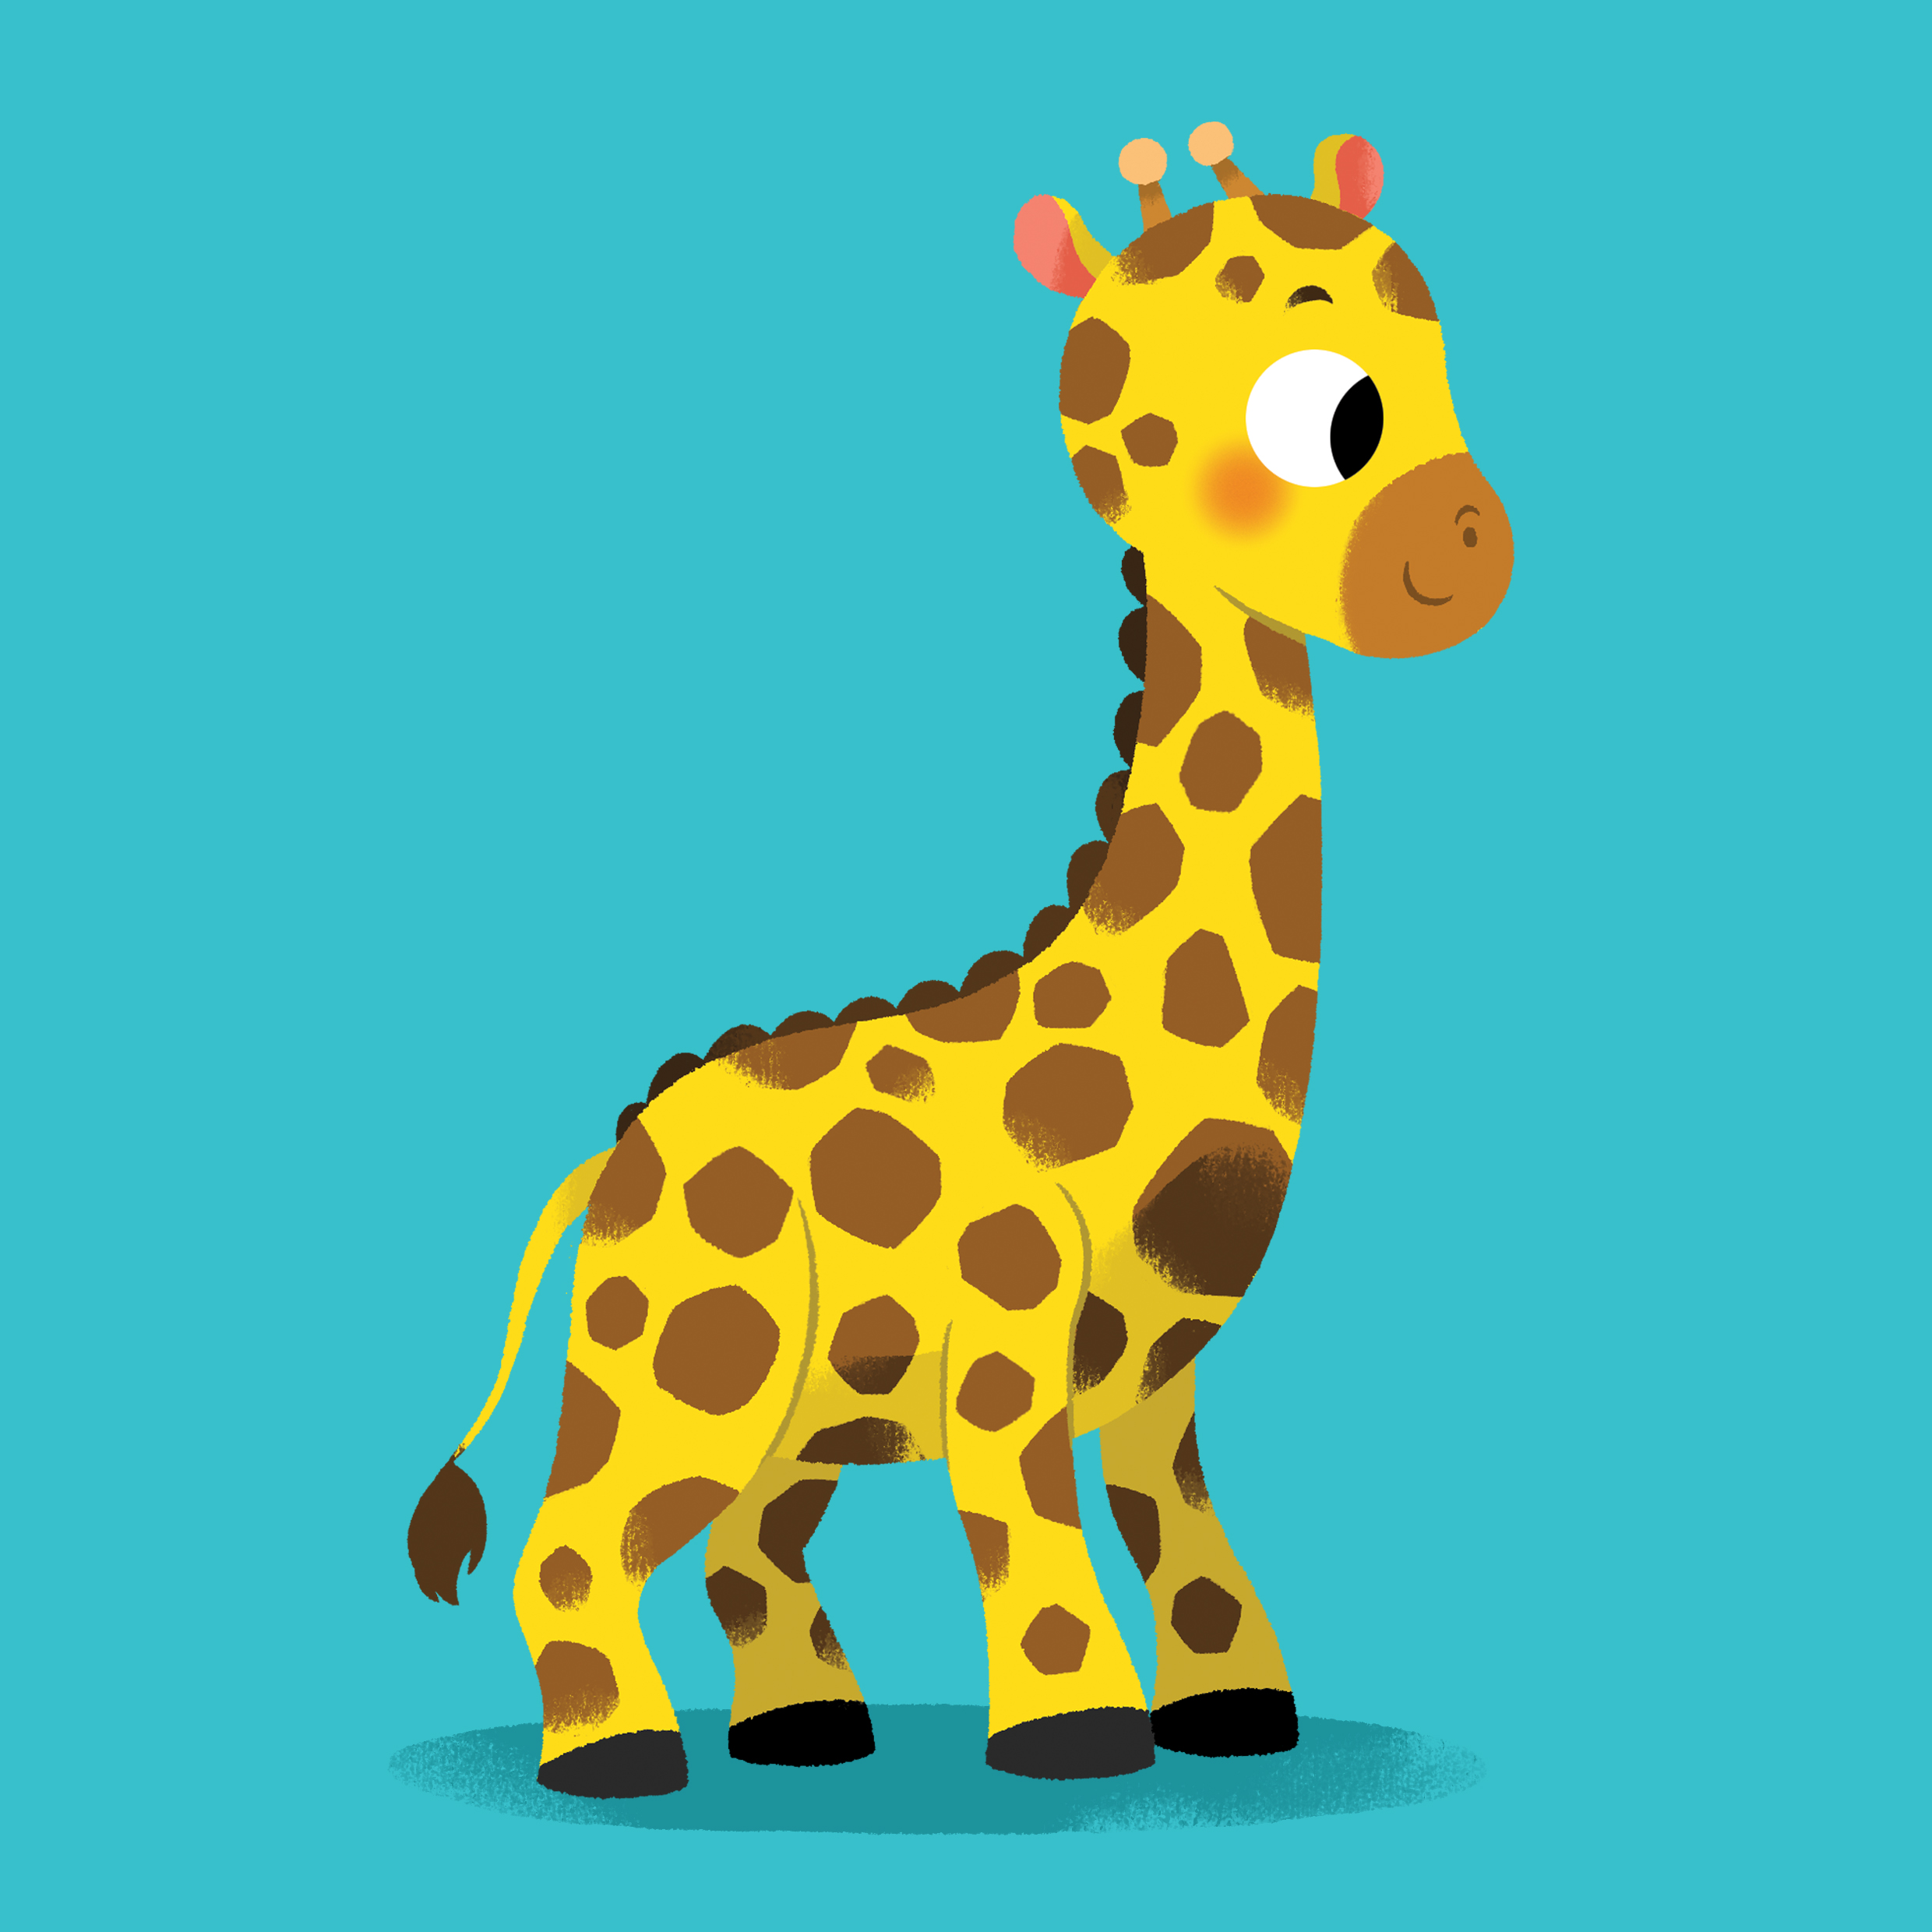 CUTE_GIRAFFE_DRAWING_PAMELA_BARBIERI